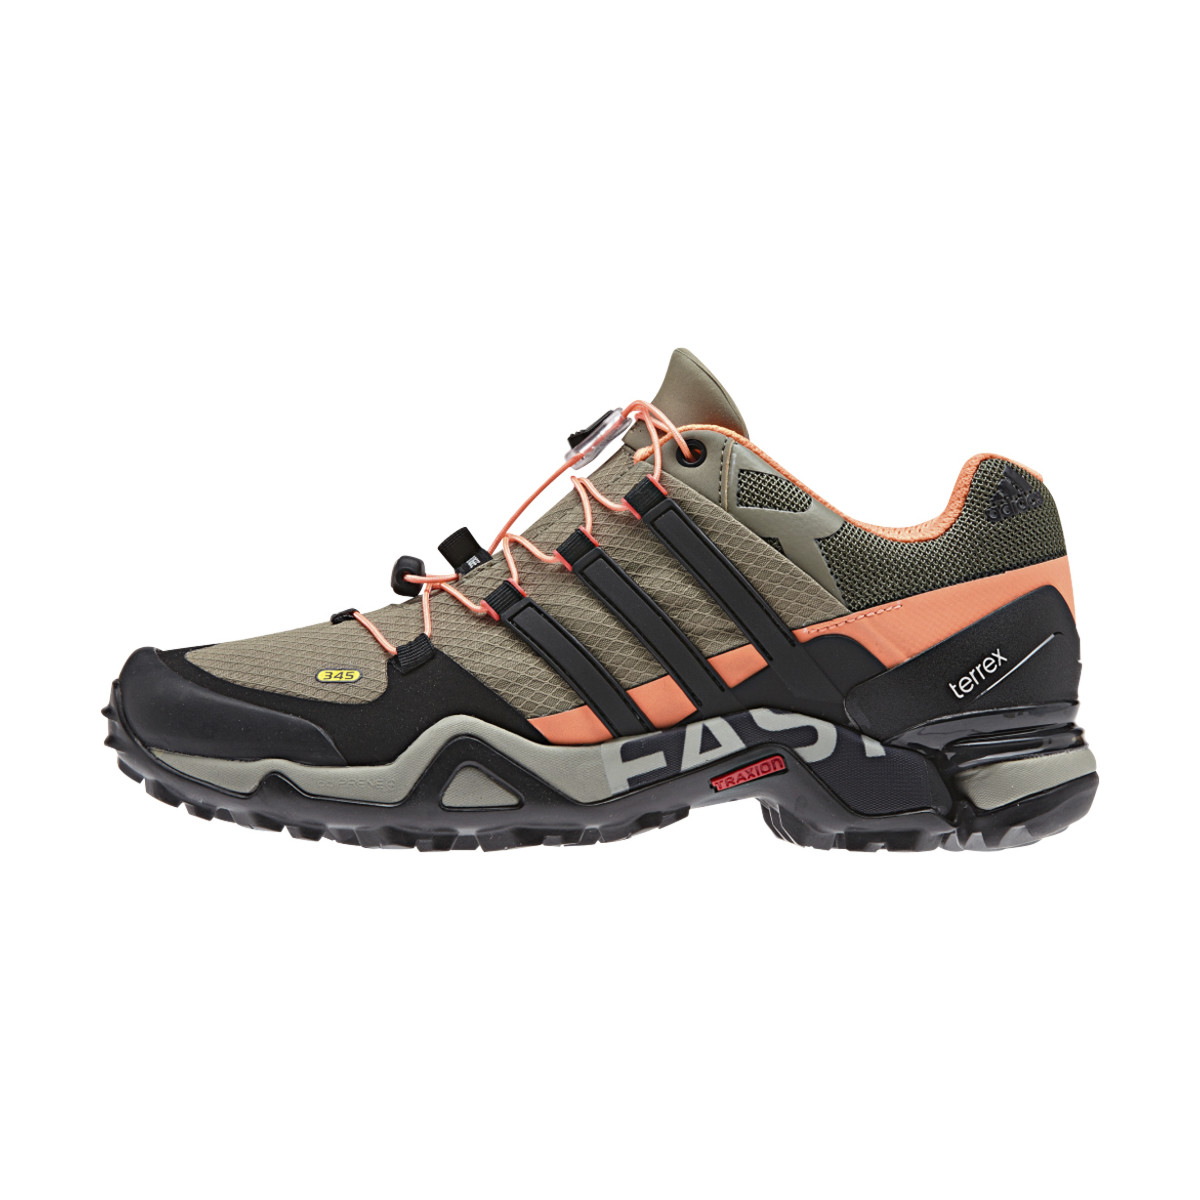 Trail Shoe Reviews Trailspace Com